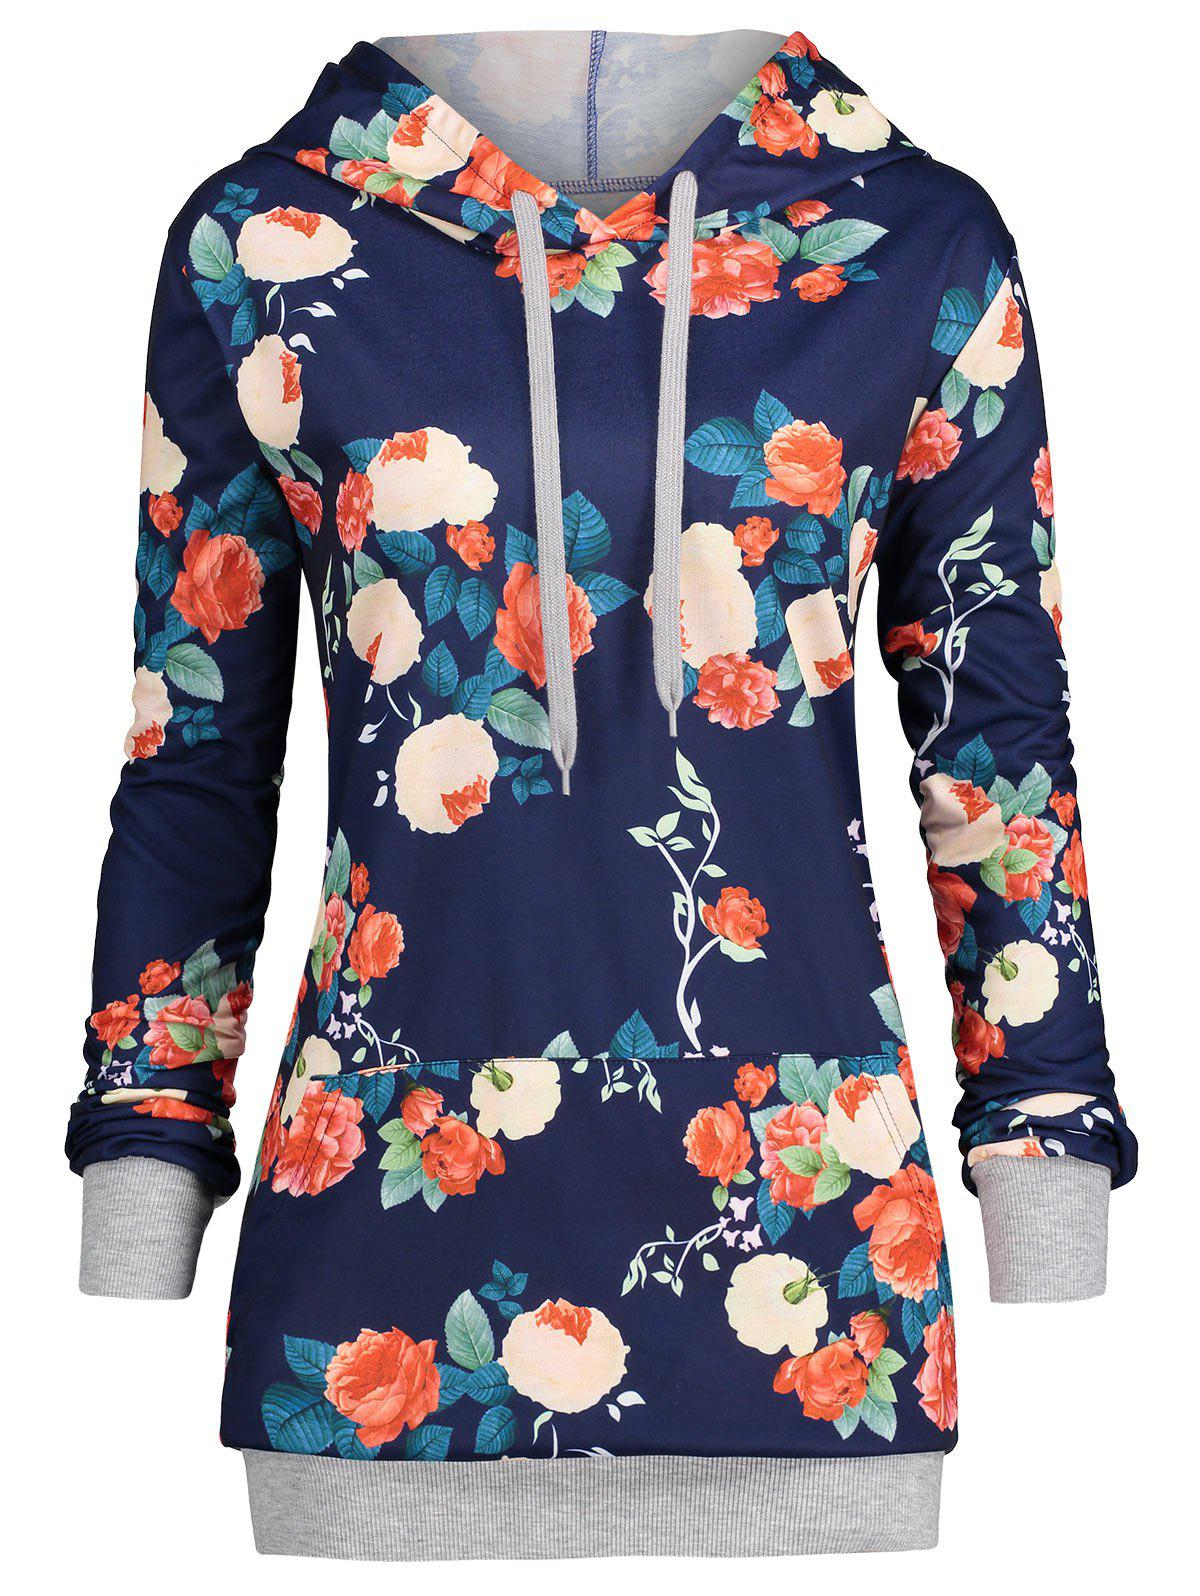 Kangaroo Pocket Plus Size Floral HoodieWOMEN<br><br>Size: 3XL; Color: BLUE; Material: Polyester,Spandex; Shirt Length: Regular; Sleeve Length: Full; Style: Fashion; Pattern Style: Floral; Season: Fall,Spring; Weight: 0.4200kg; Package Contents: 1 x Hoodie;